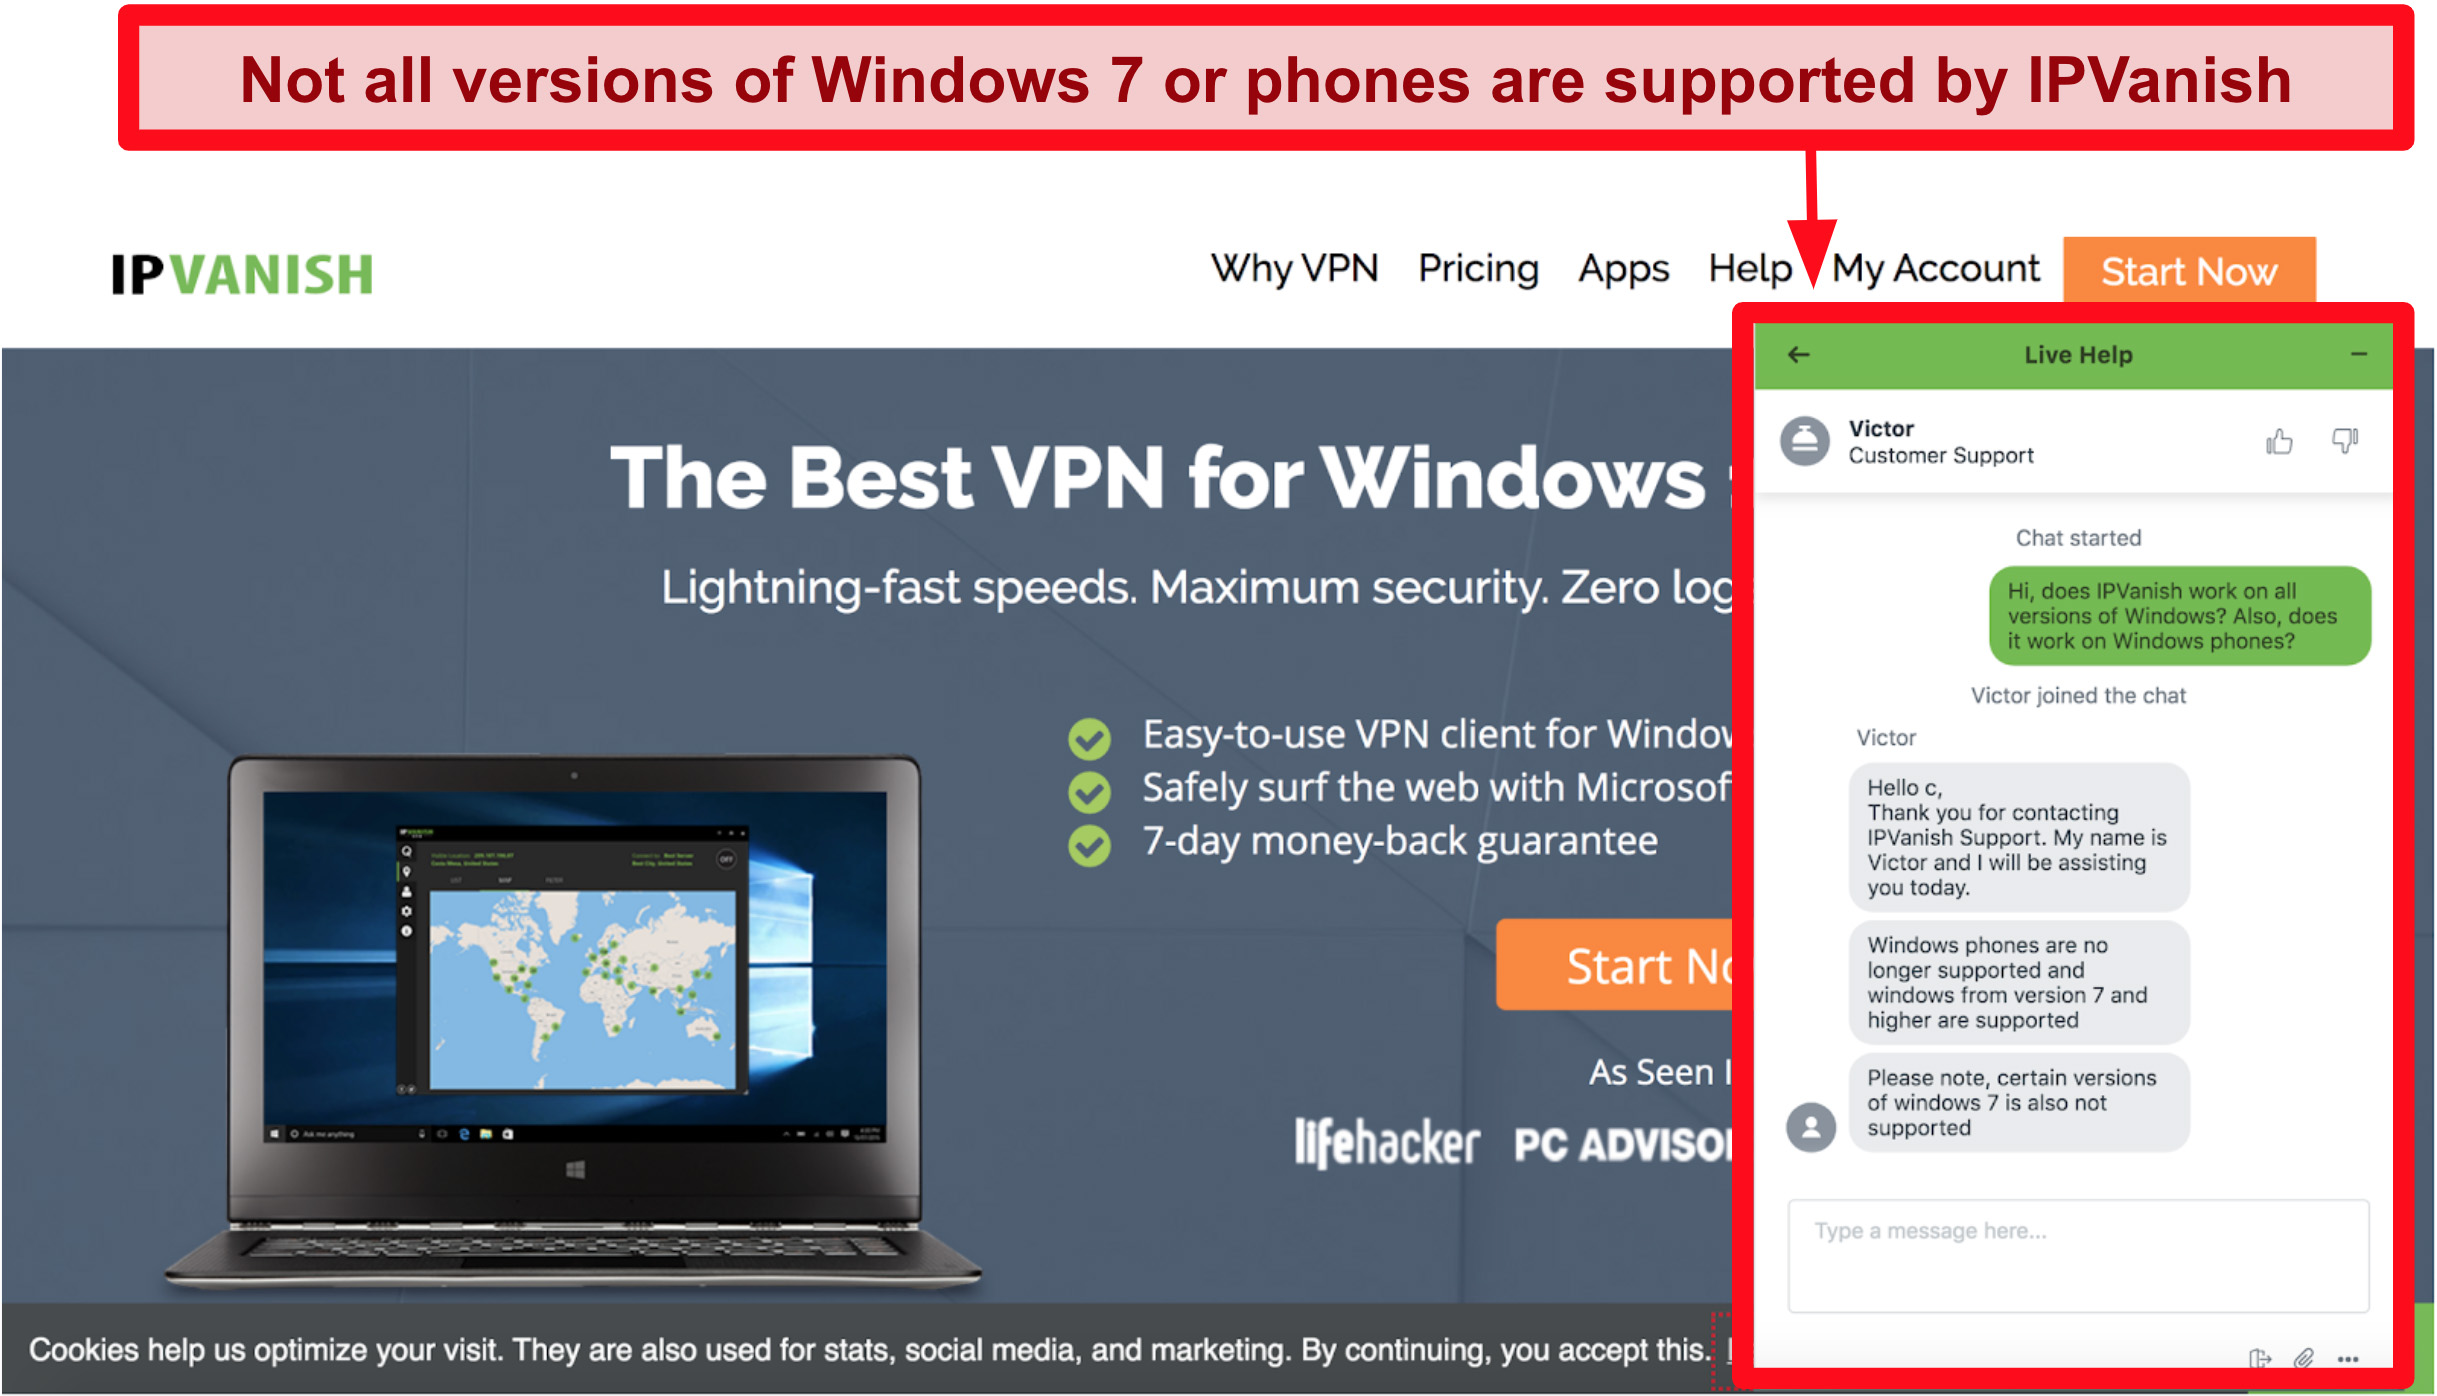 Screenshot of IPVanish's customer chat saying windows phones and windows 7 are not supported